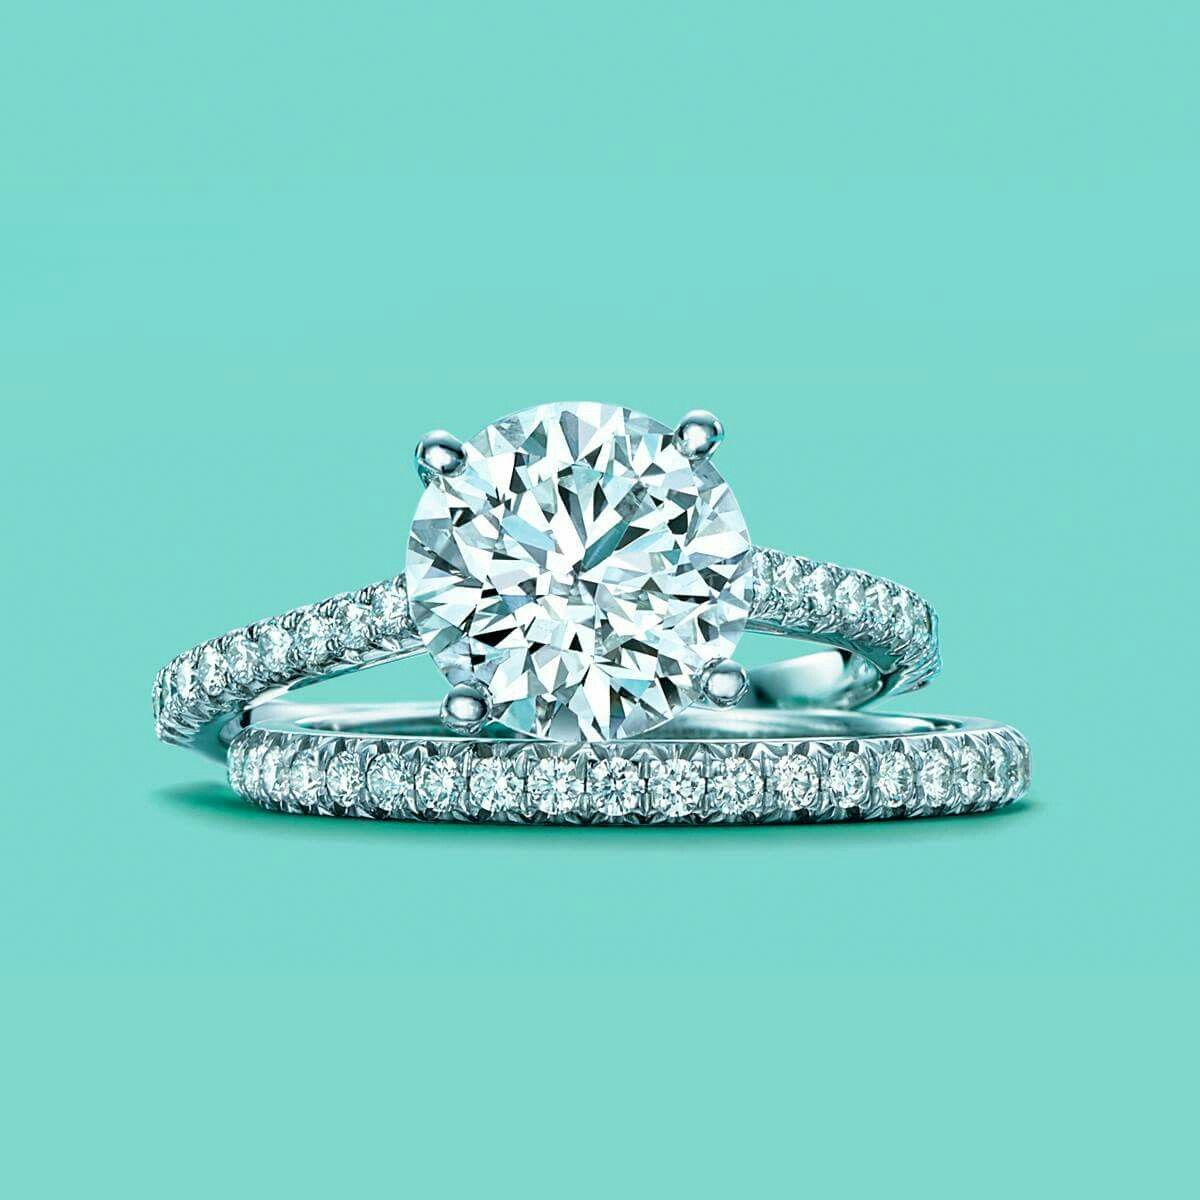 Tiffany novor round dream engagement rings diamond for Tiffany weddings rings